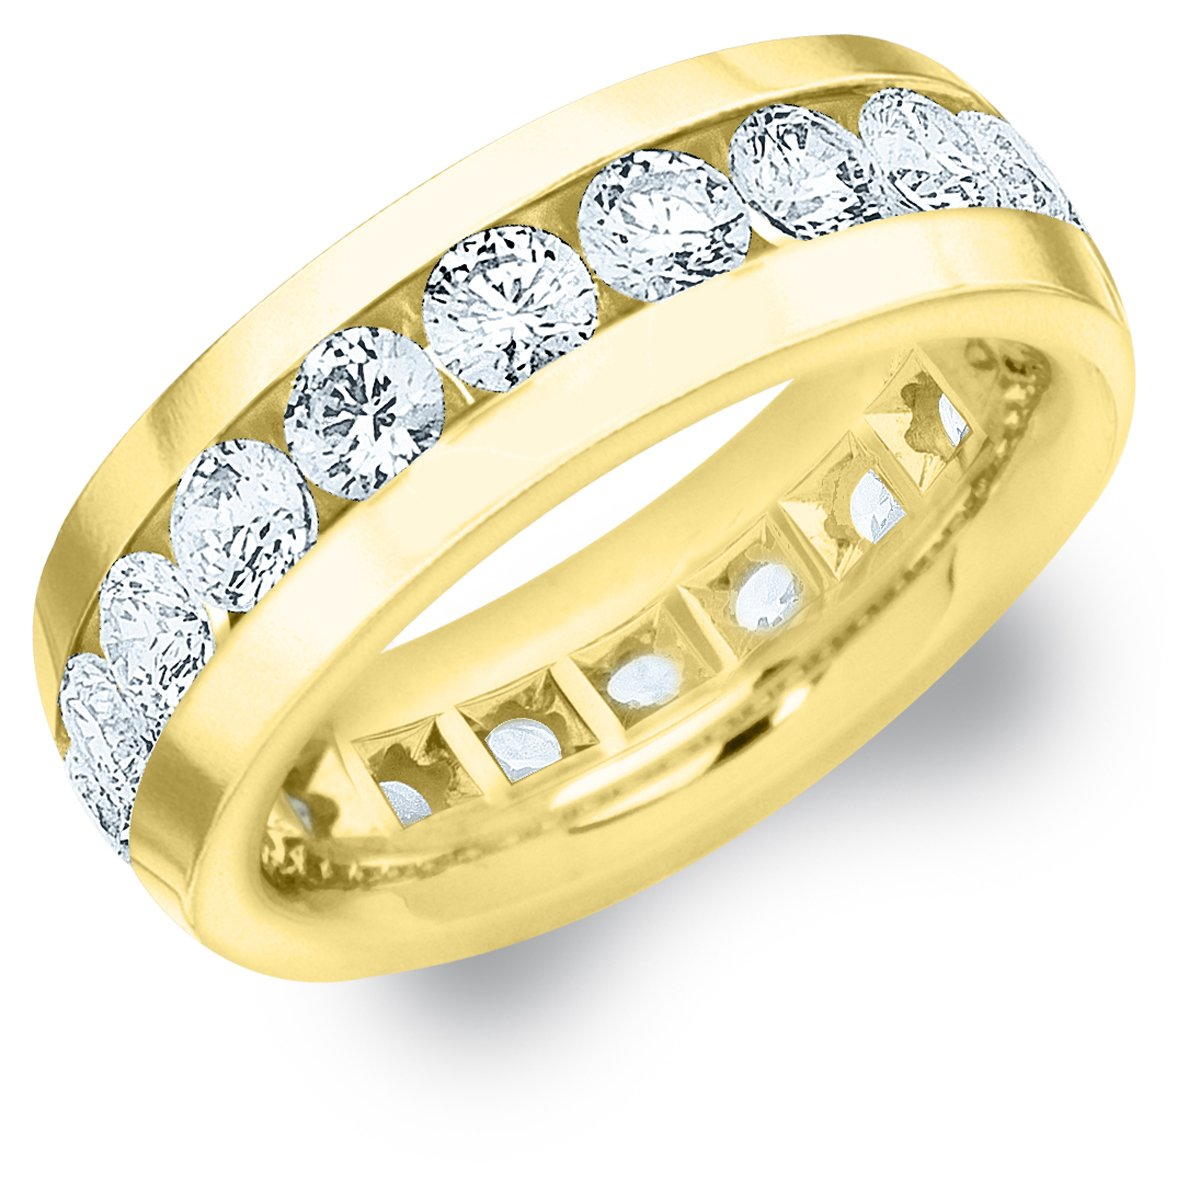 18K Yellow Gold Men's Diamond Eternity Ring (4.0 cttw, F-G Color, VS1-VS2 Clarity) Size 13